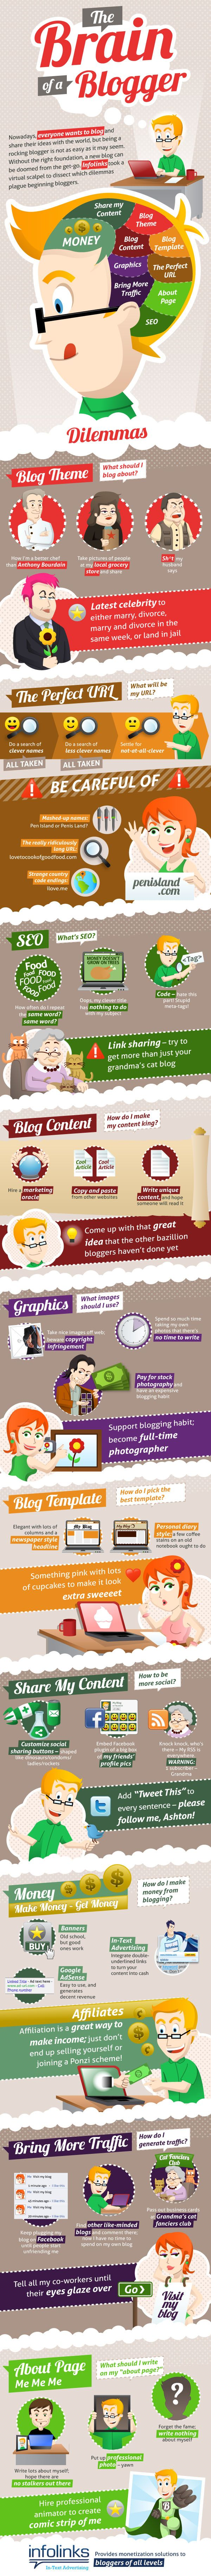 The Brain of a #Blogger - not a business infographic but great layout and content so good inspiration for creating infographics